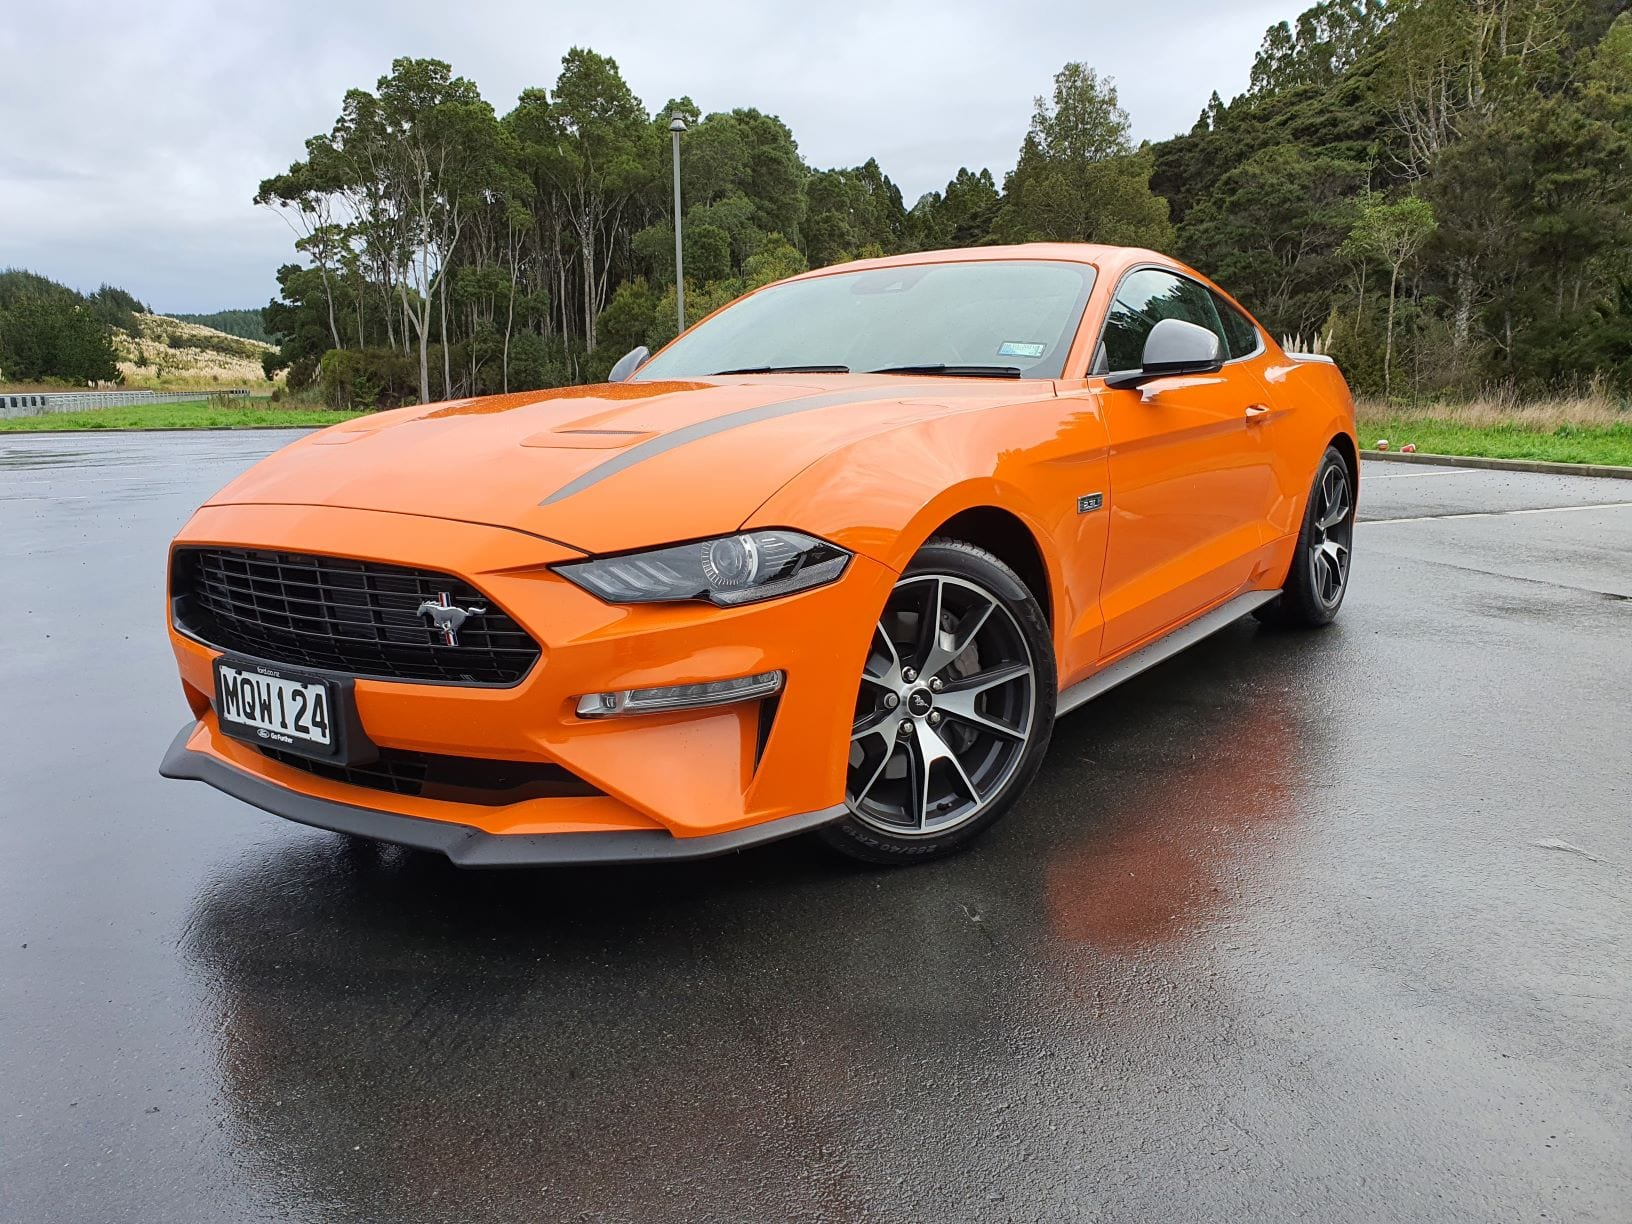 A frontal view of the 2.3L turbo Ford Mustang in bright orange